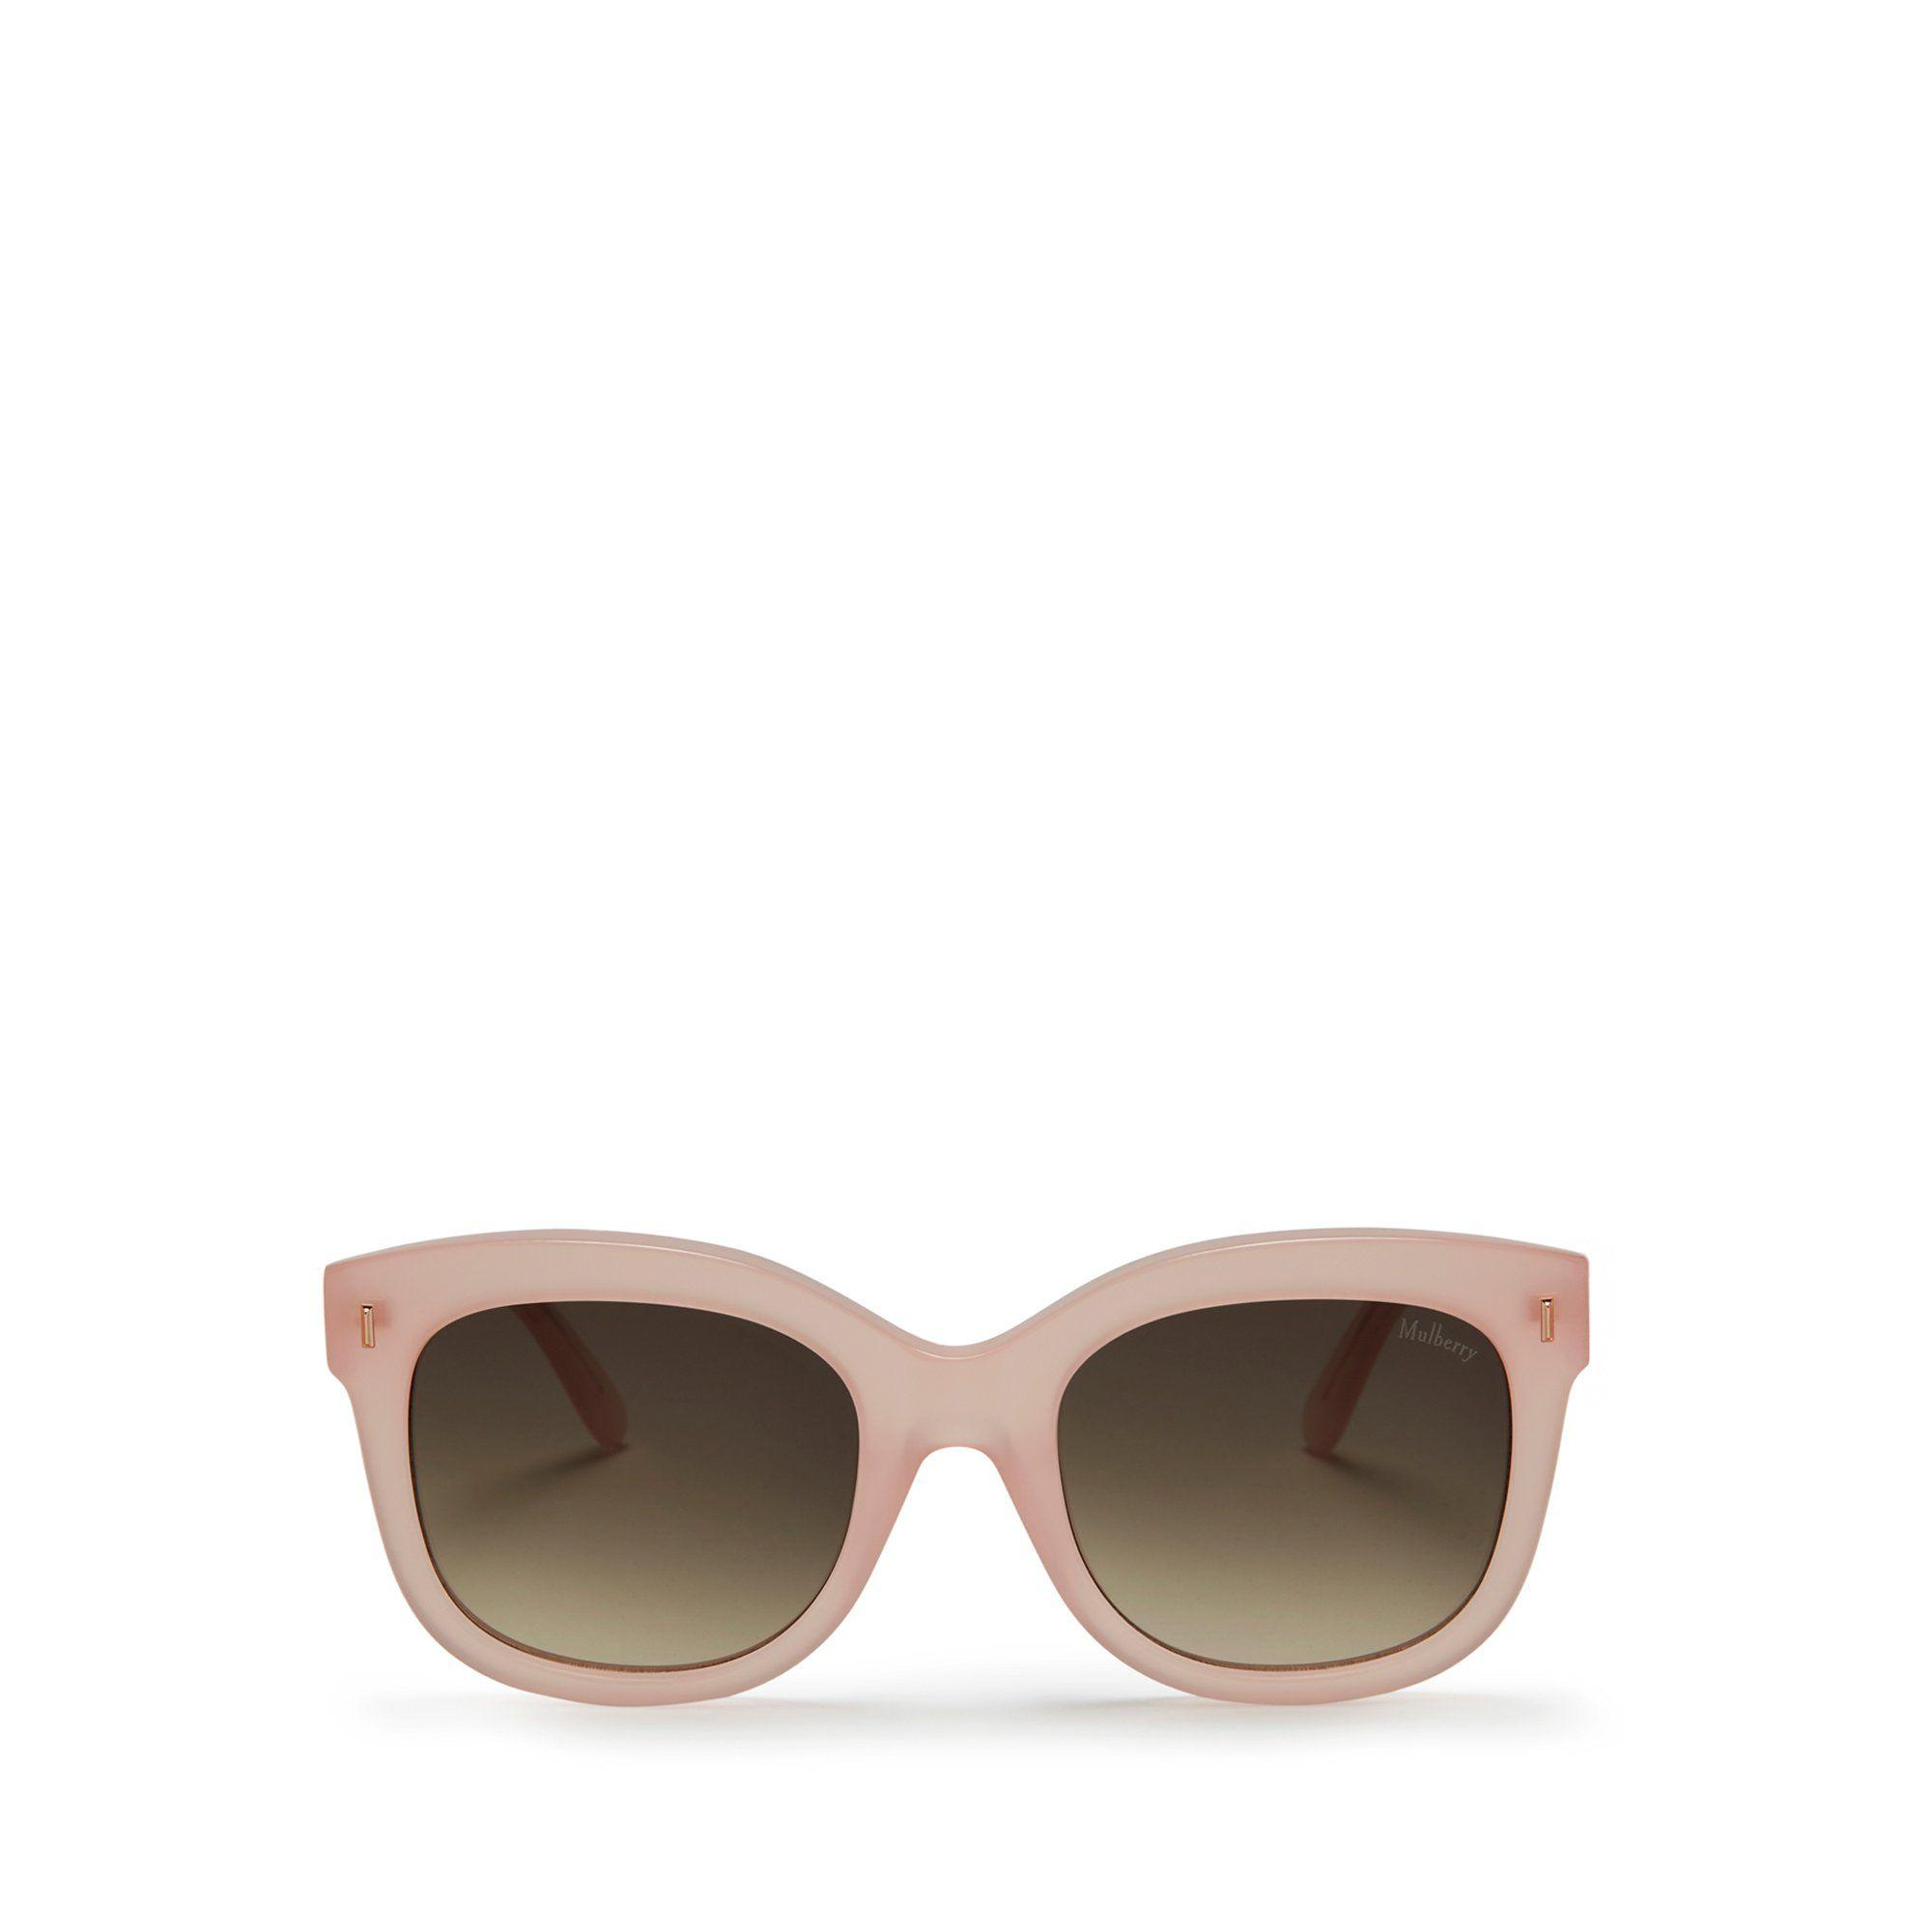 799552b914cc Mulberry Charlotte Sunglasses In Sorbet Pink Acetate in Pink - Lyst